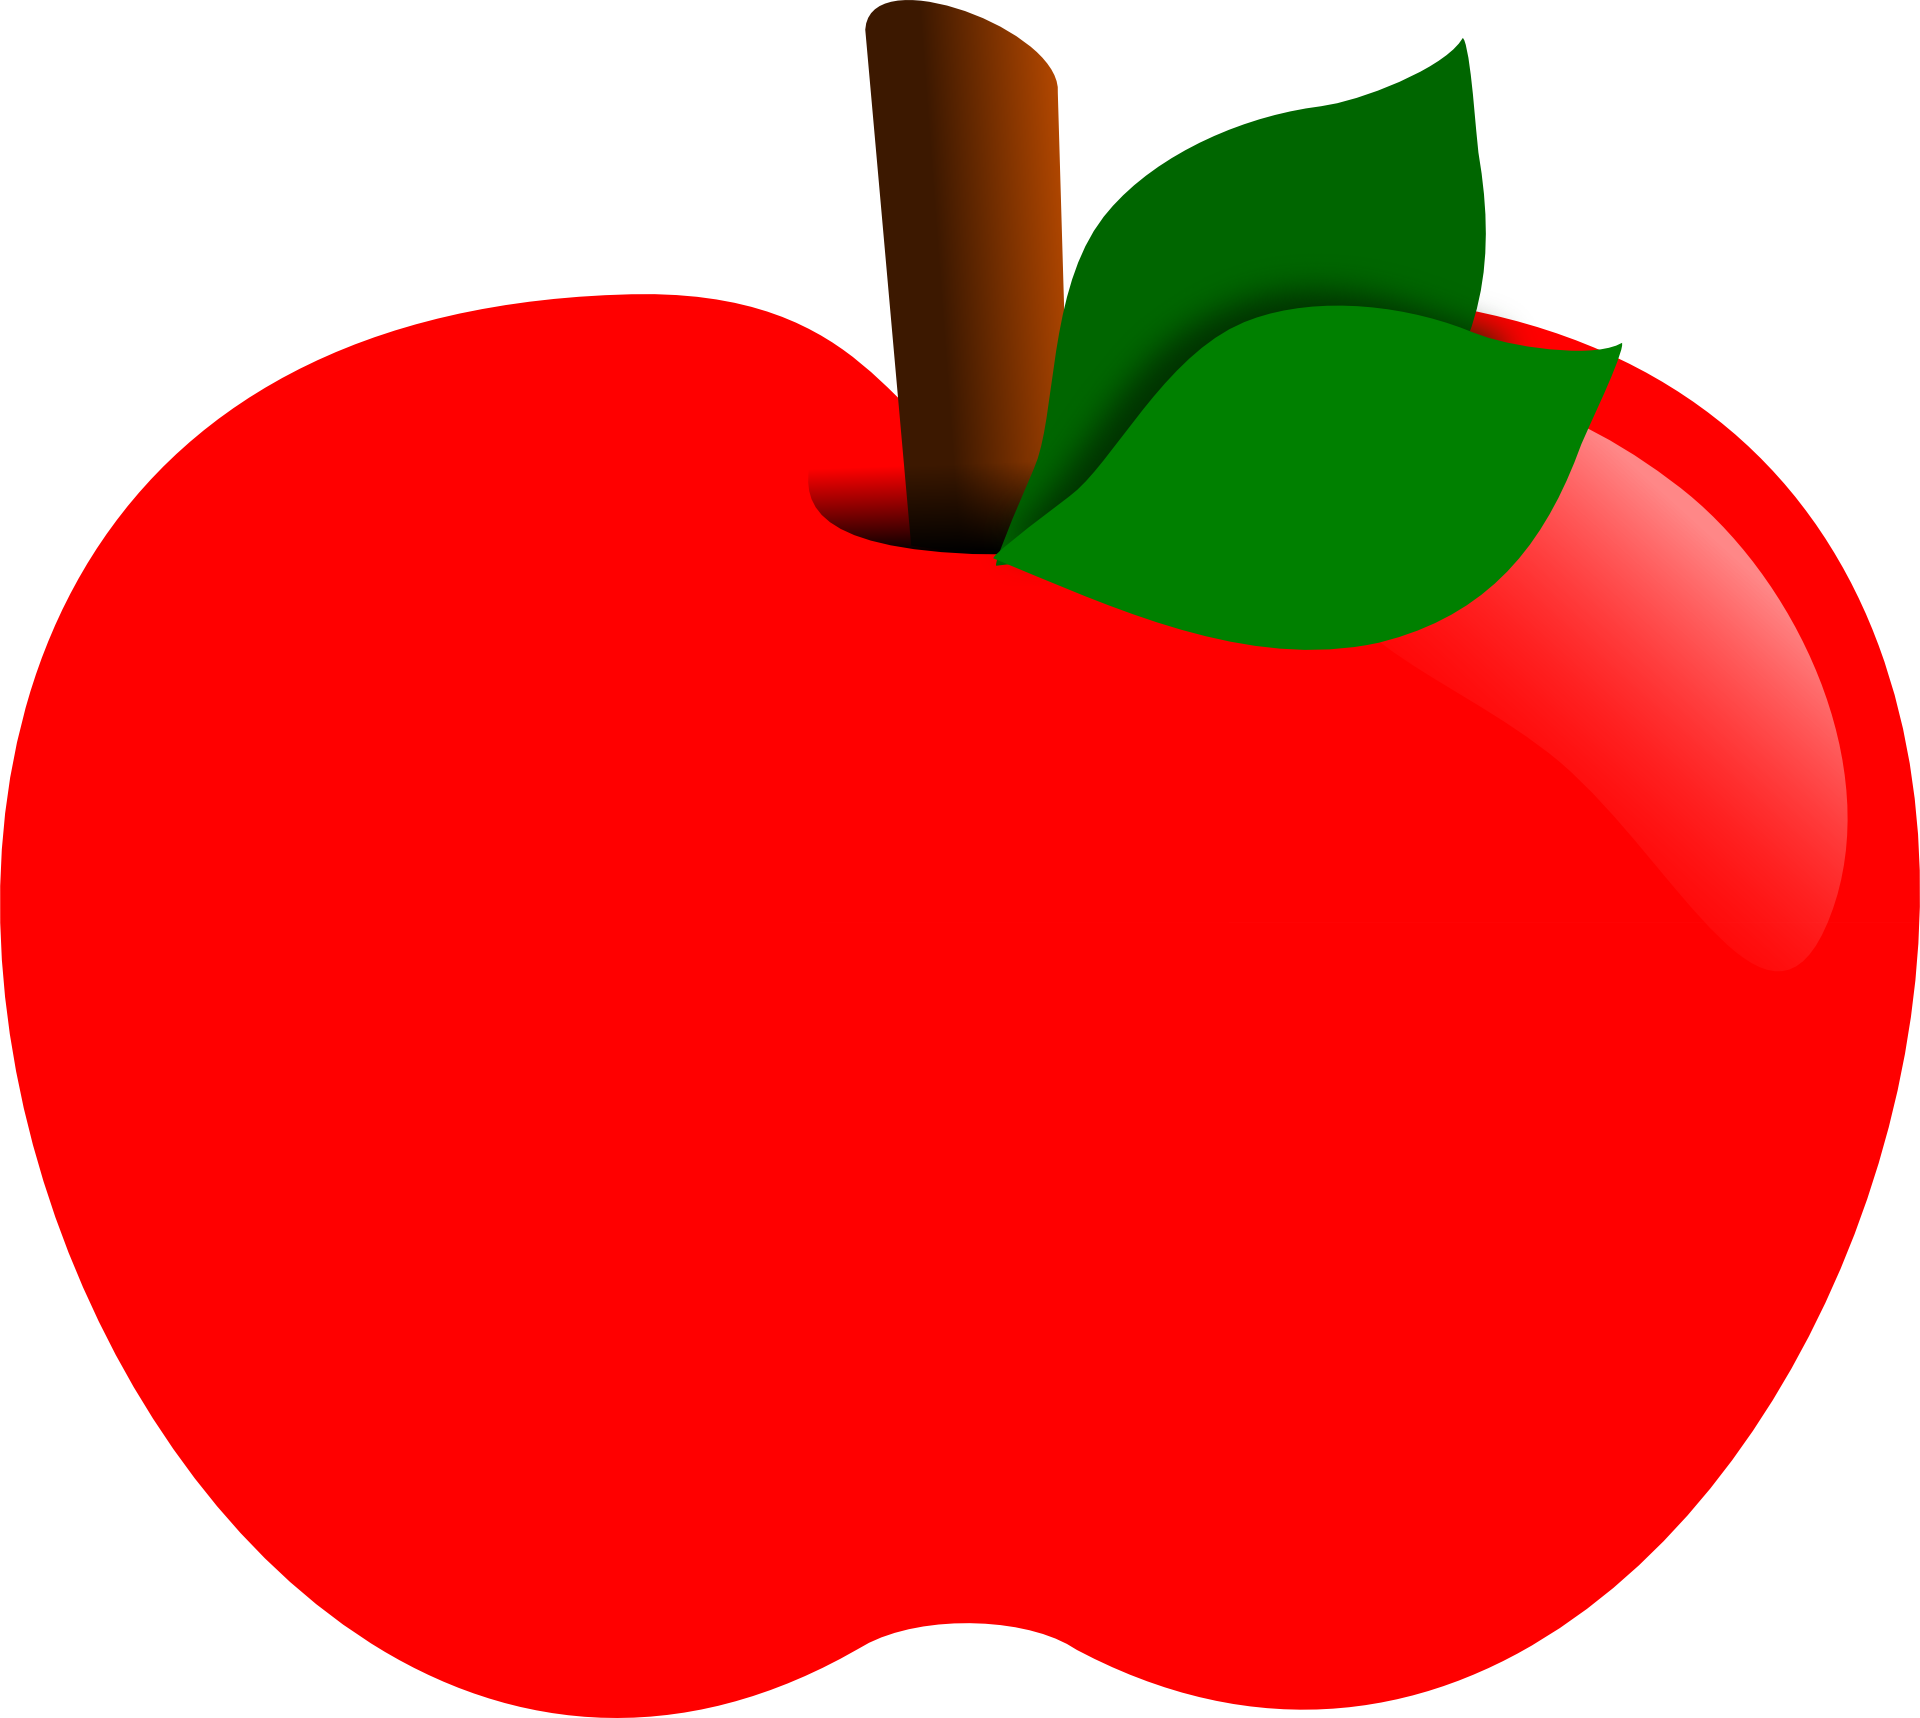 Drawing apple red. Free image